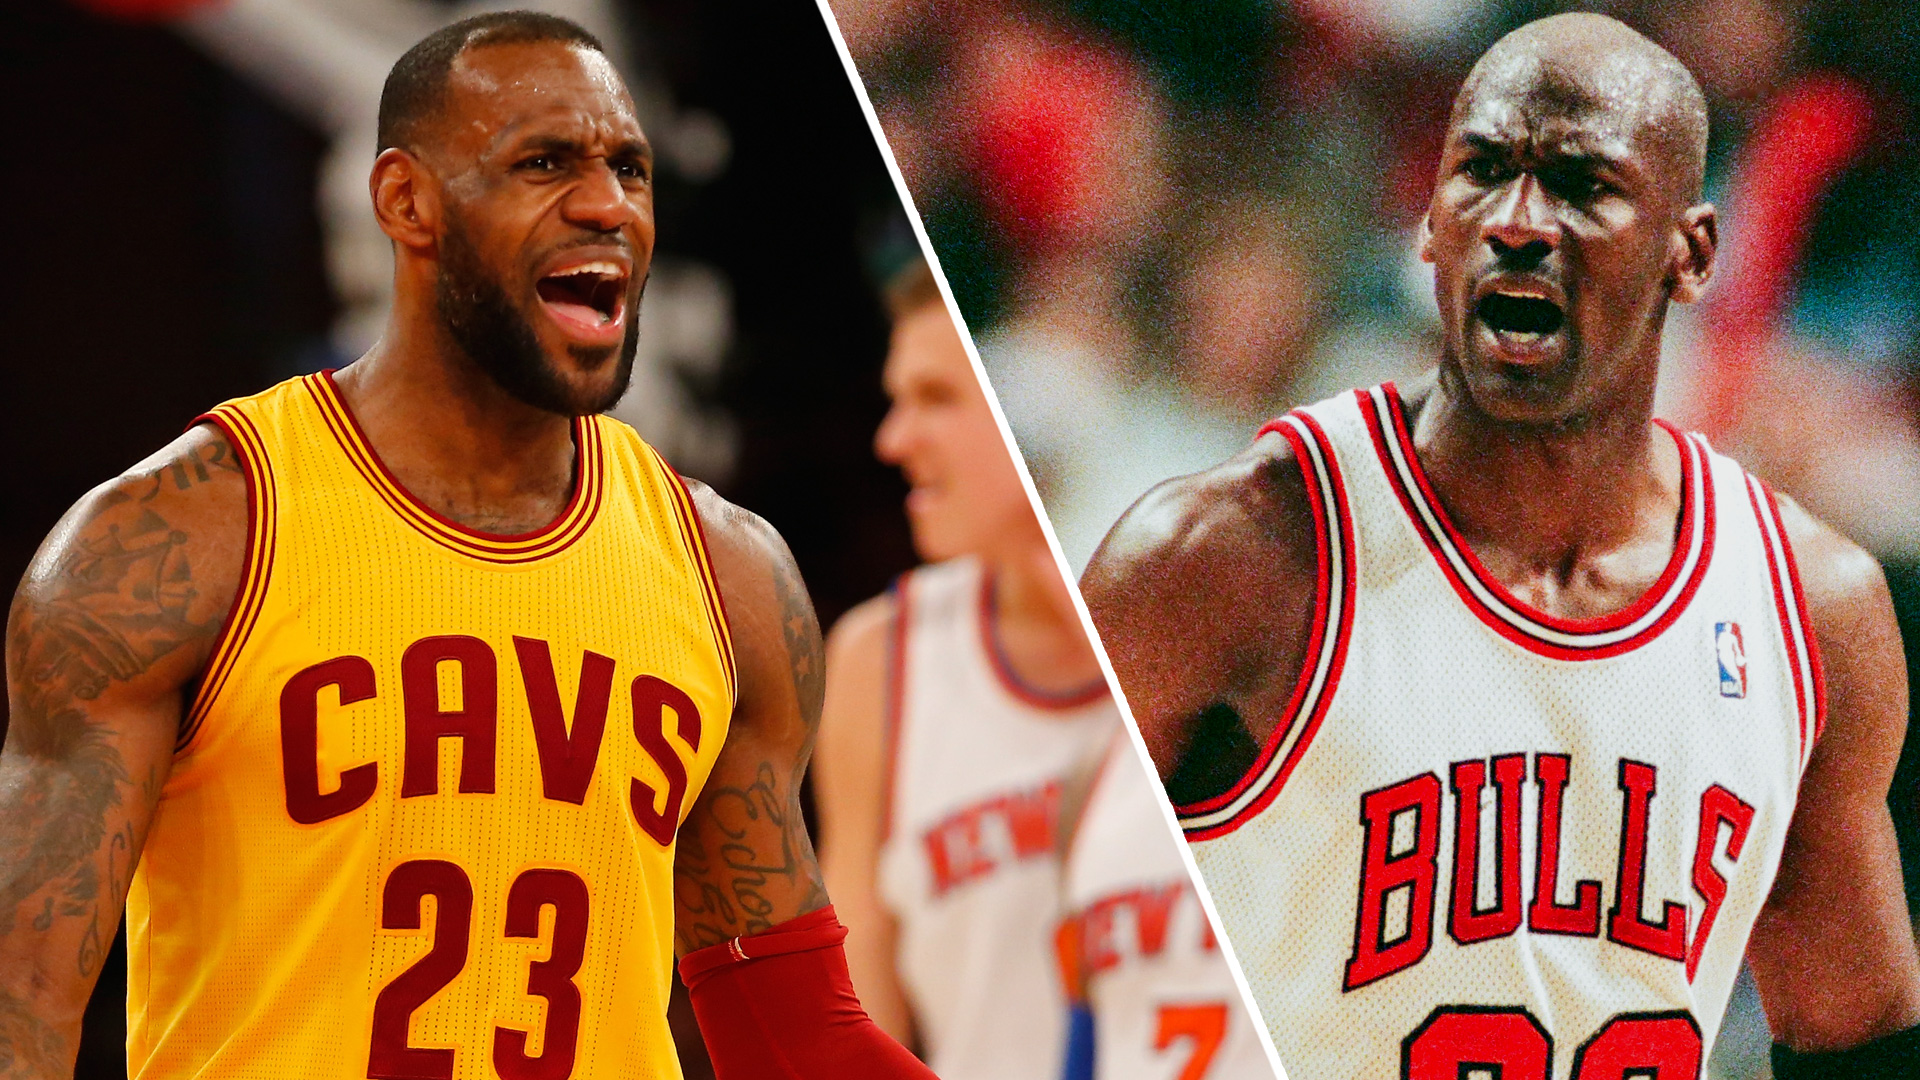 LeBron James is no Michael Jordan when it comes to trash ...